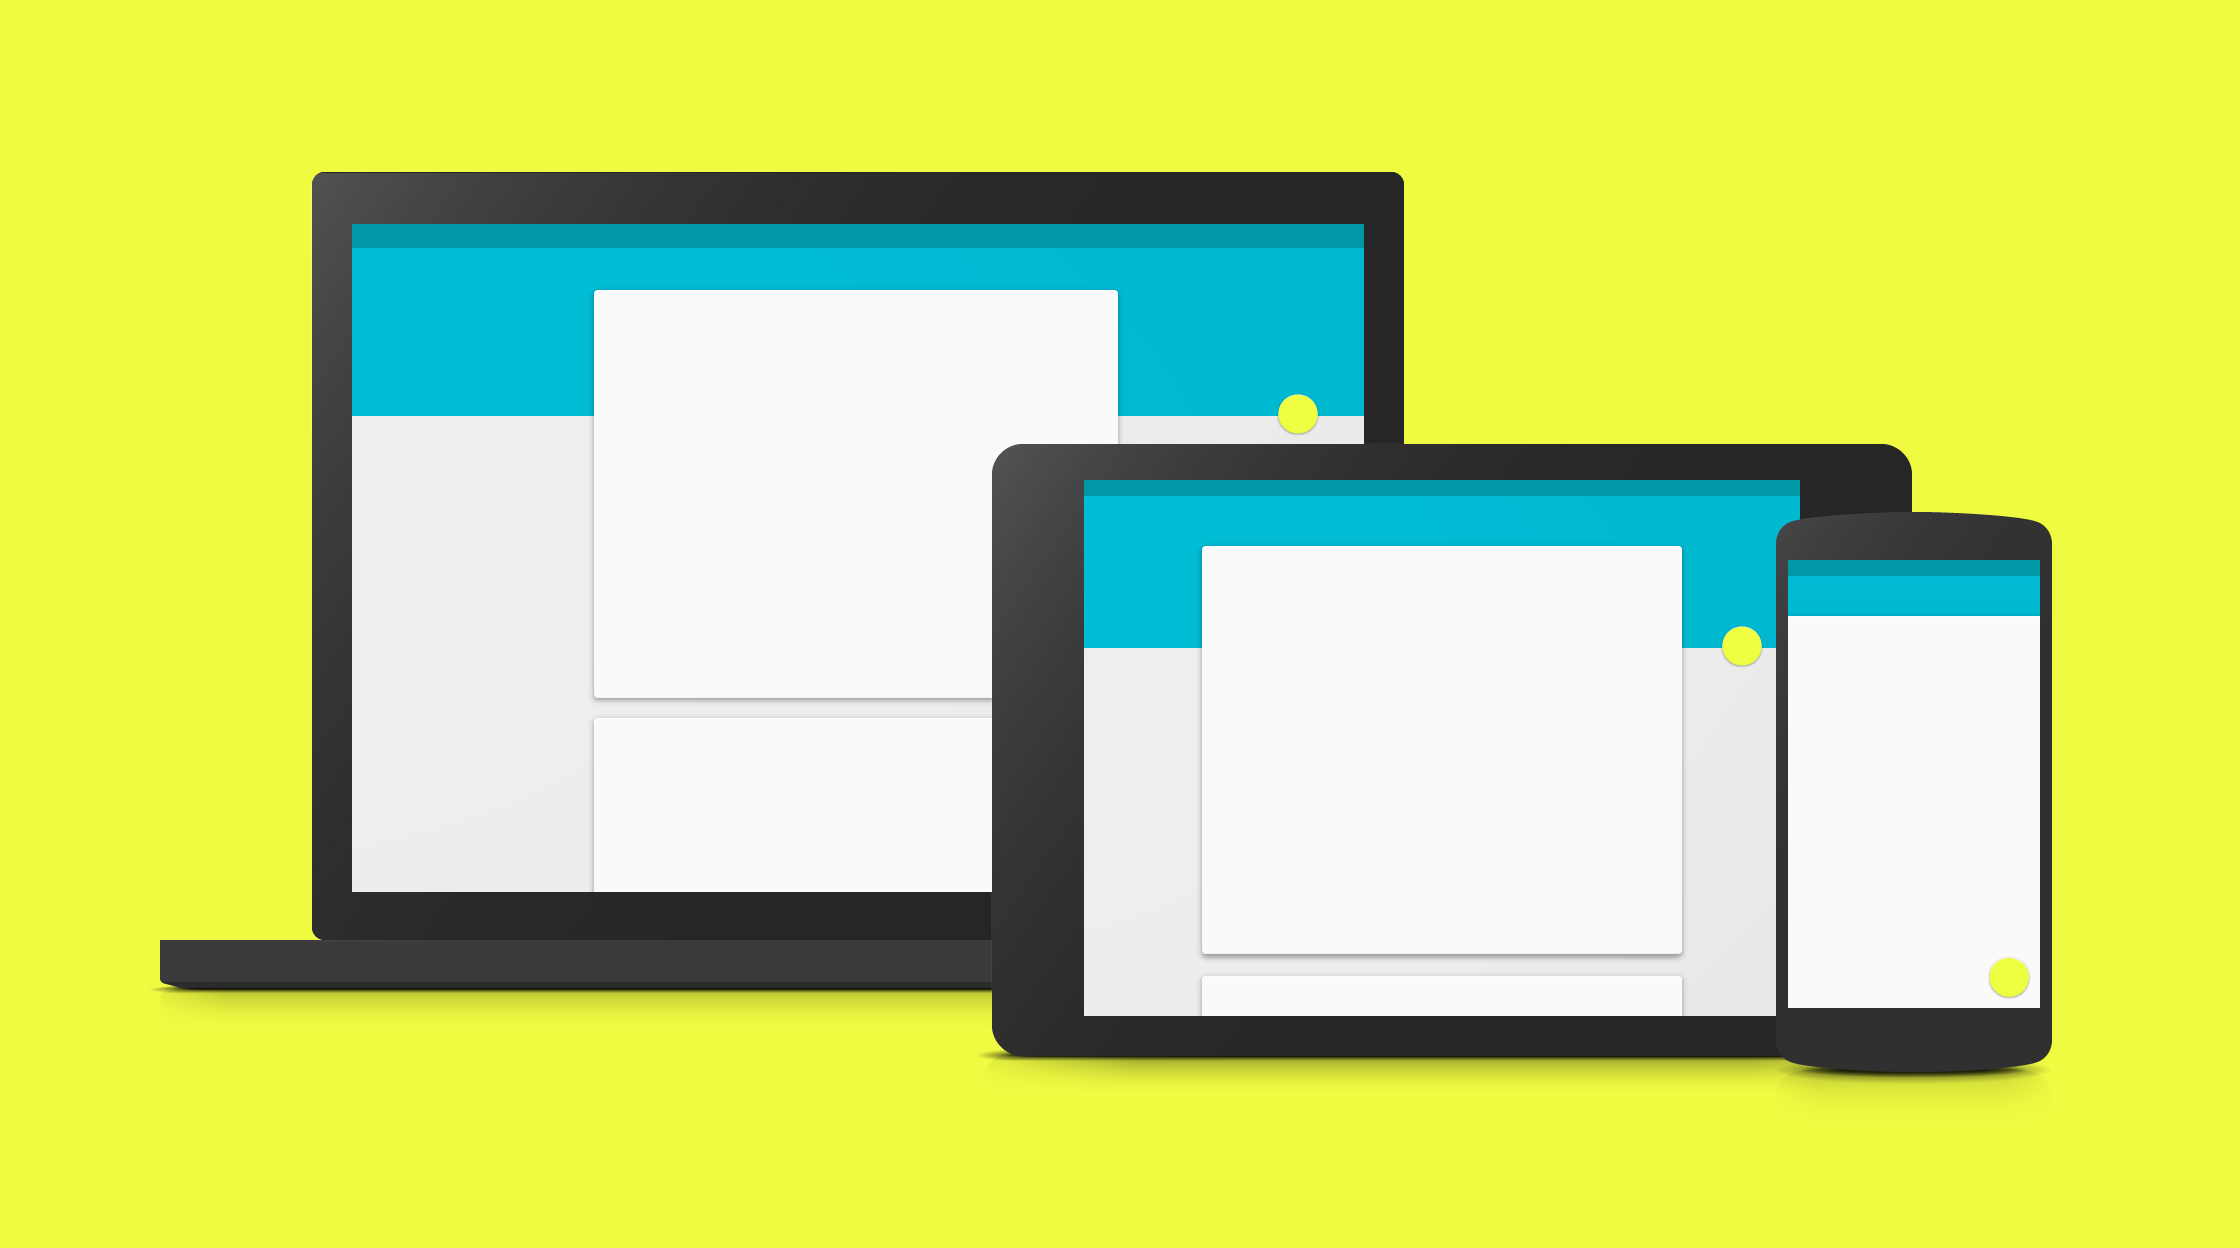 Google's material design focuses on mobile